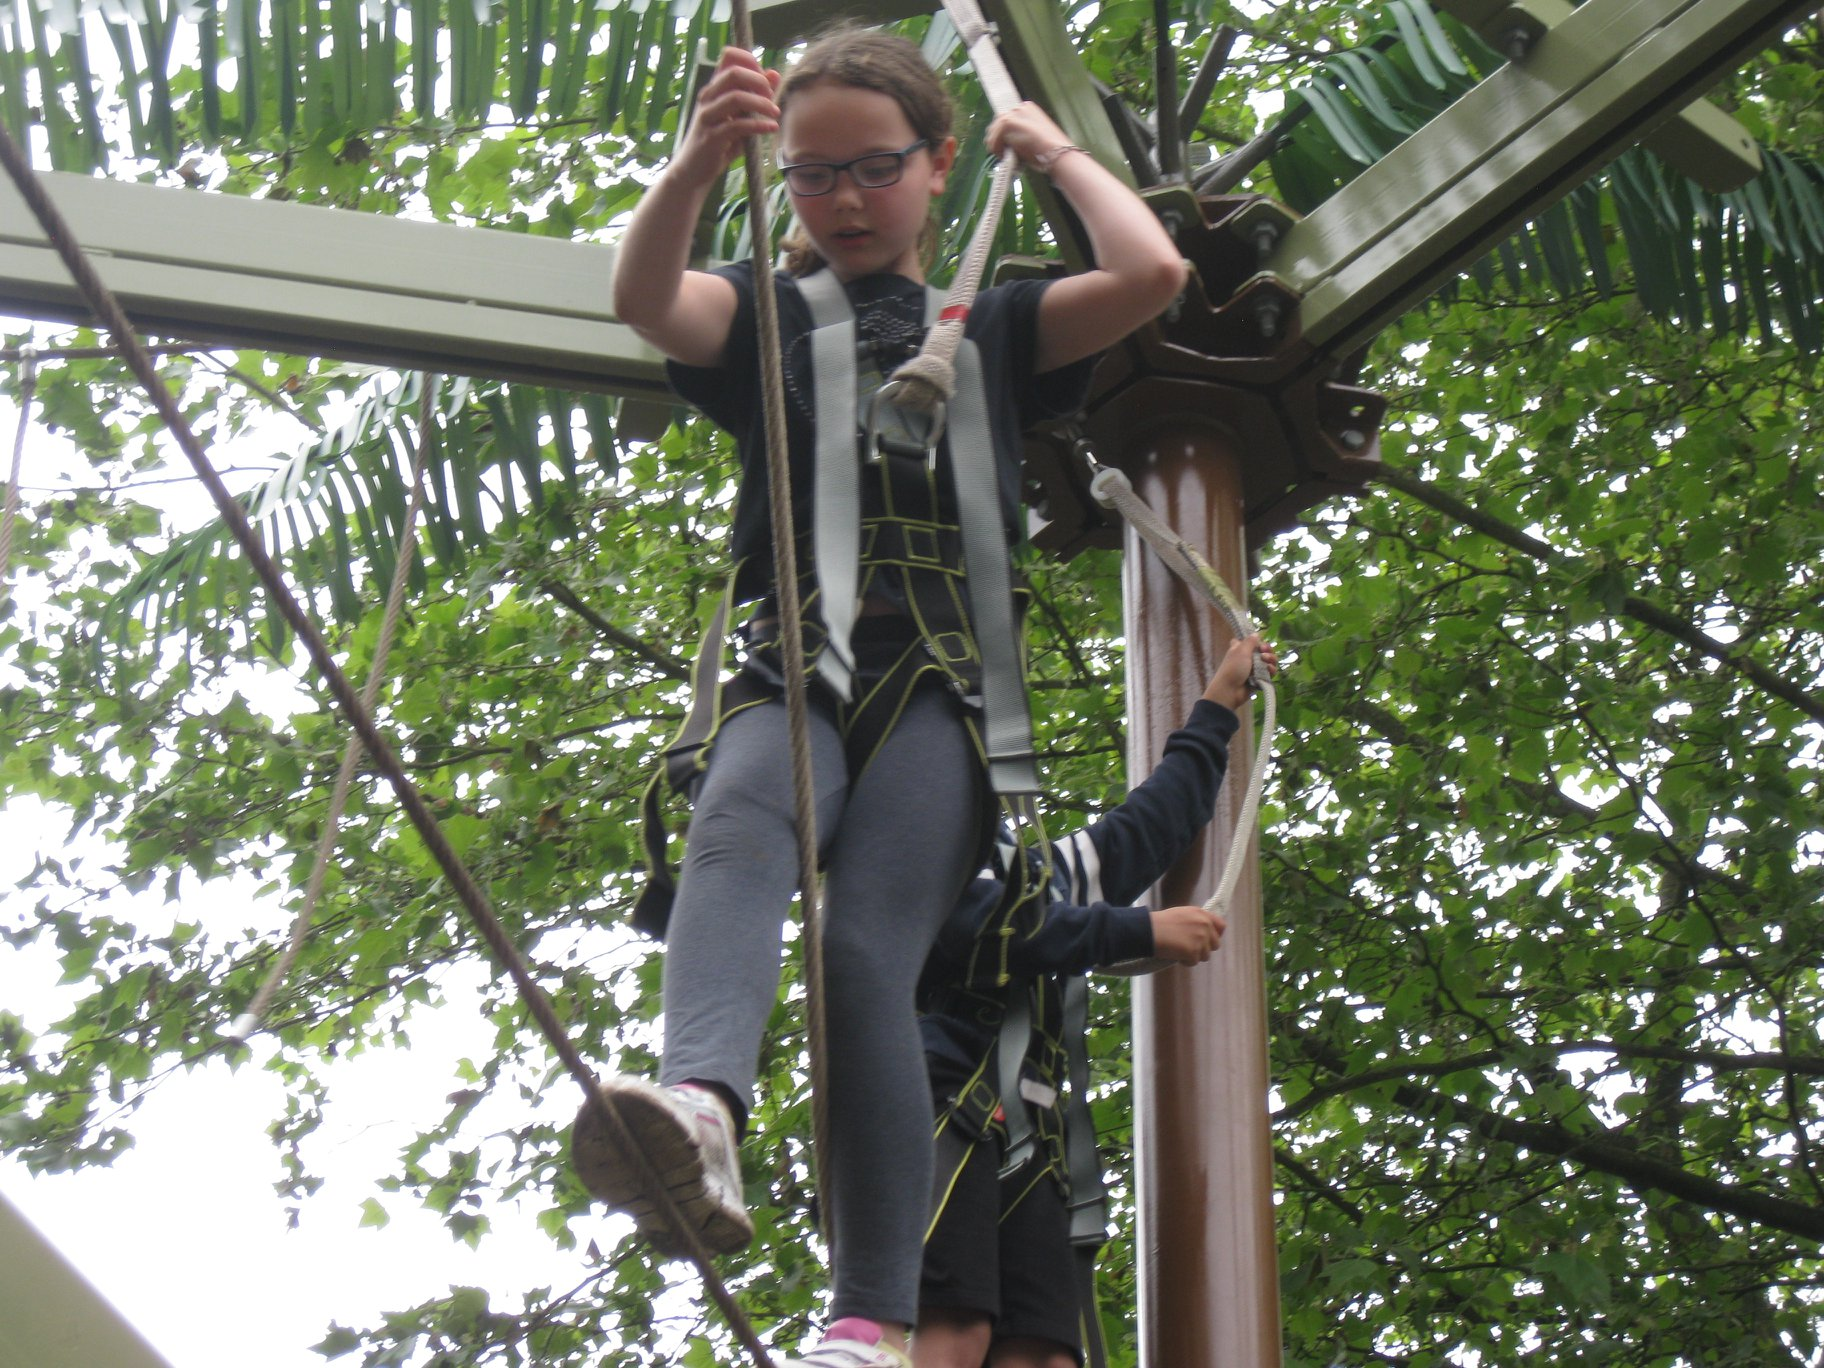 Cubs High Ropes